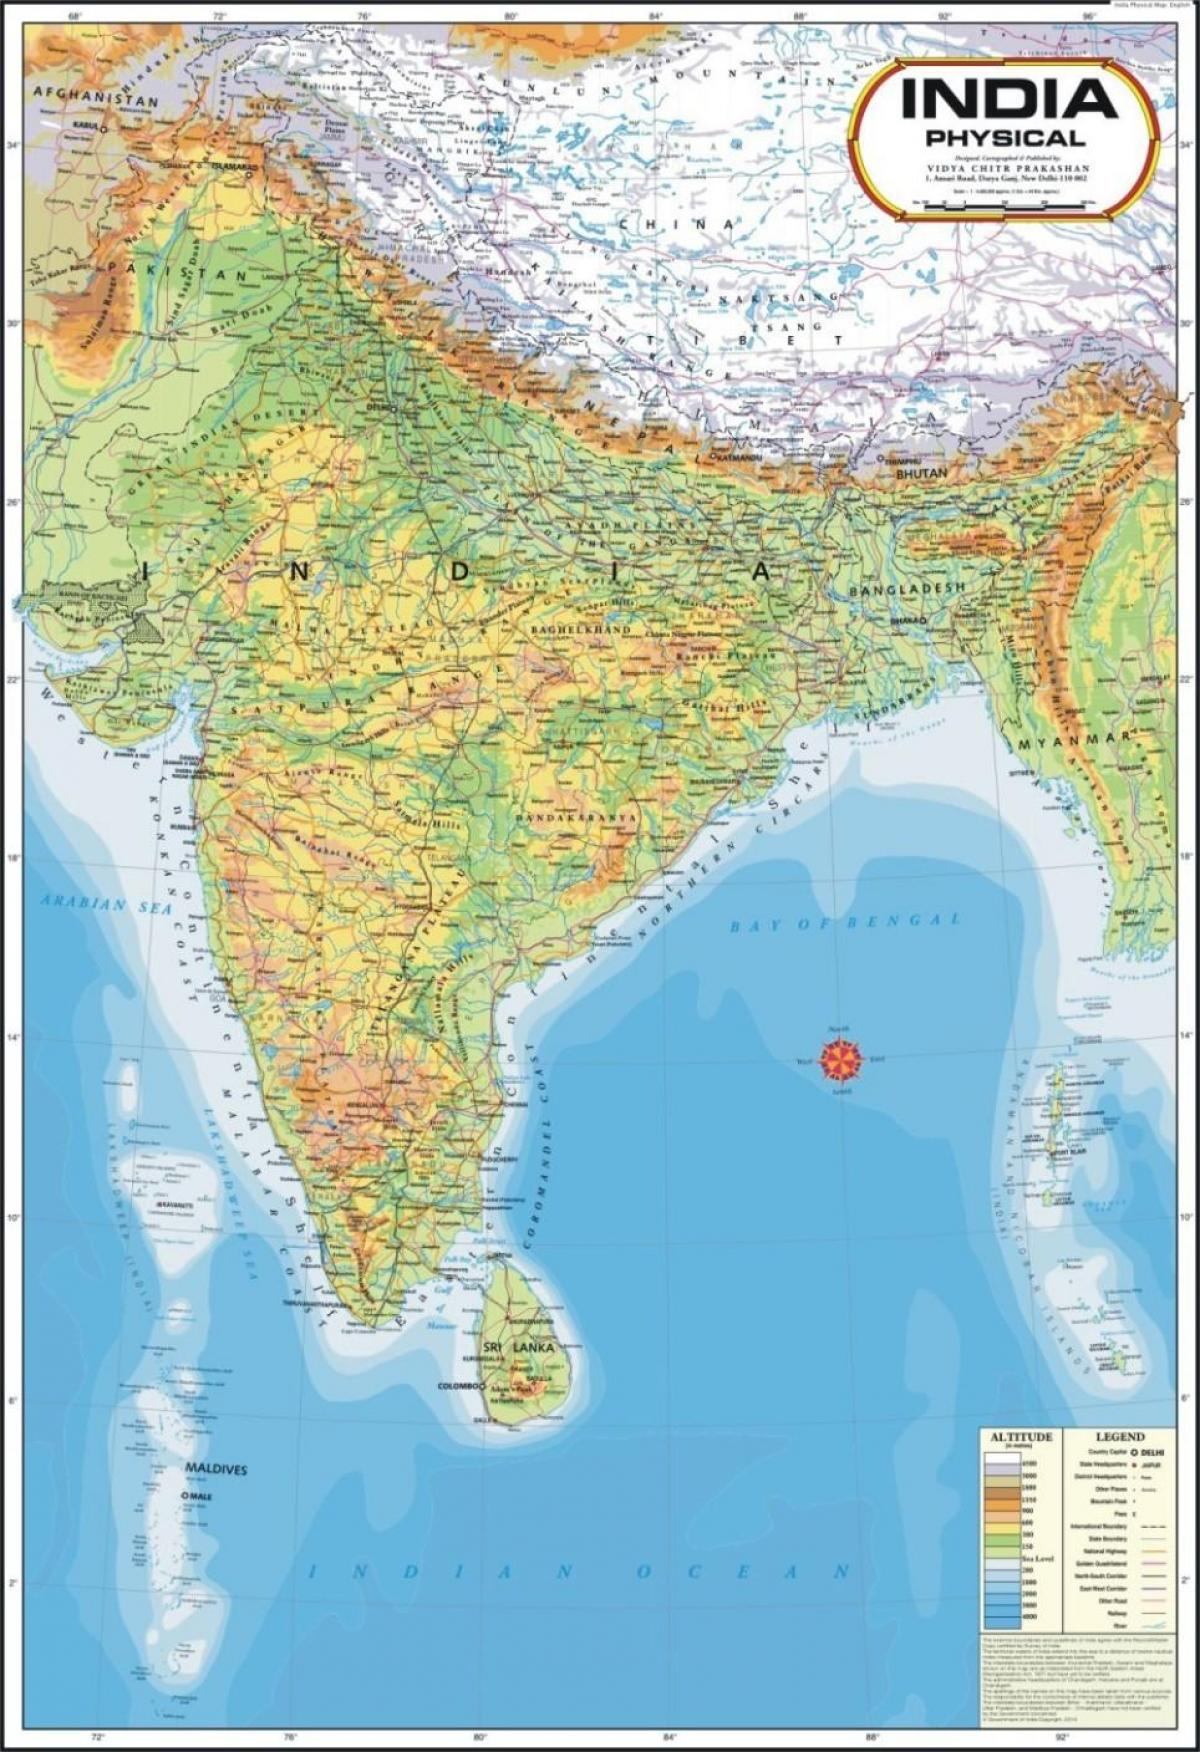 India Fisica Cartina.Mappa Fisica Dell India India Mappa Fisica Sud Est Asiatico Asia